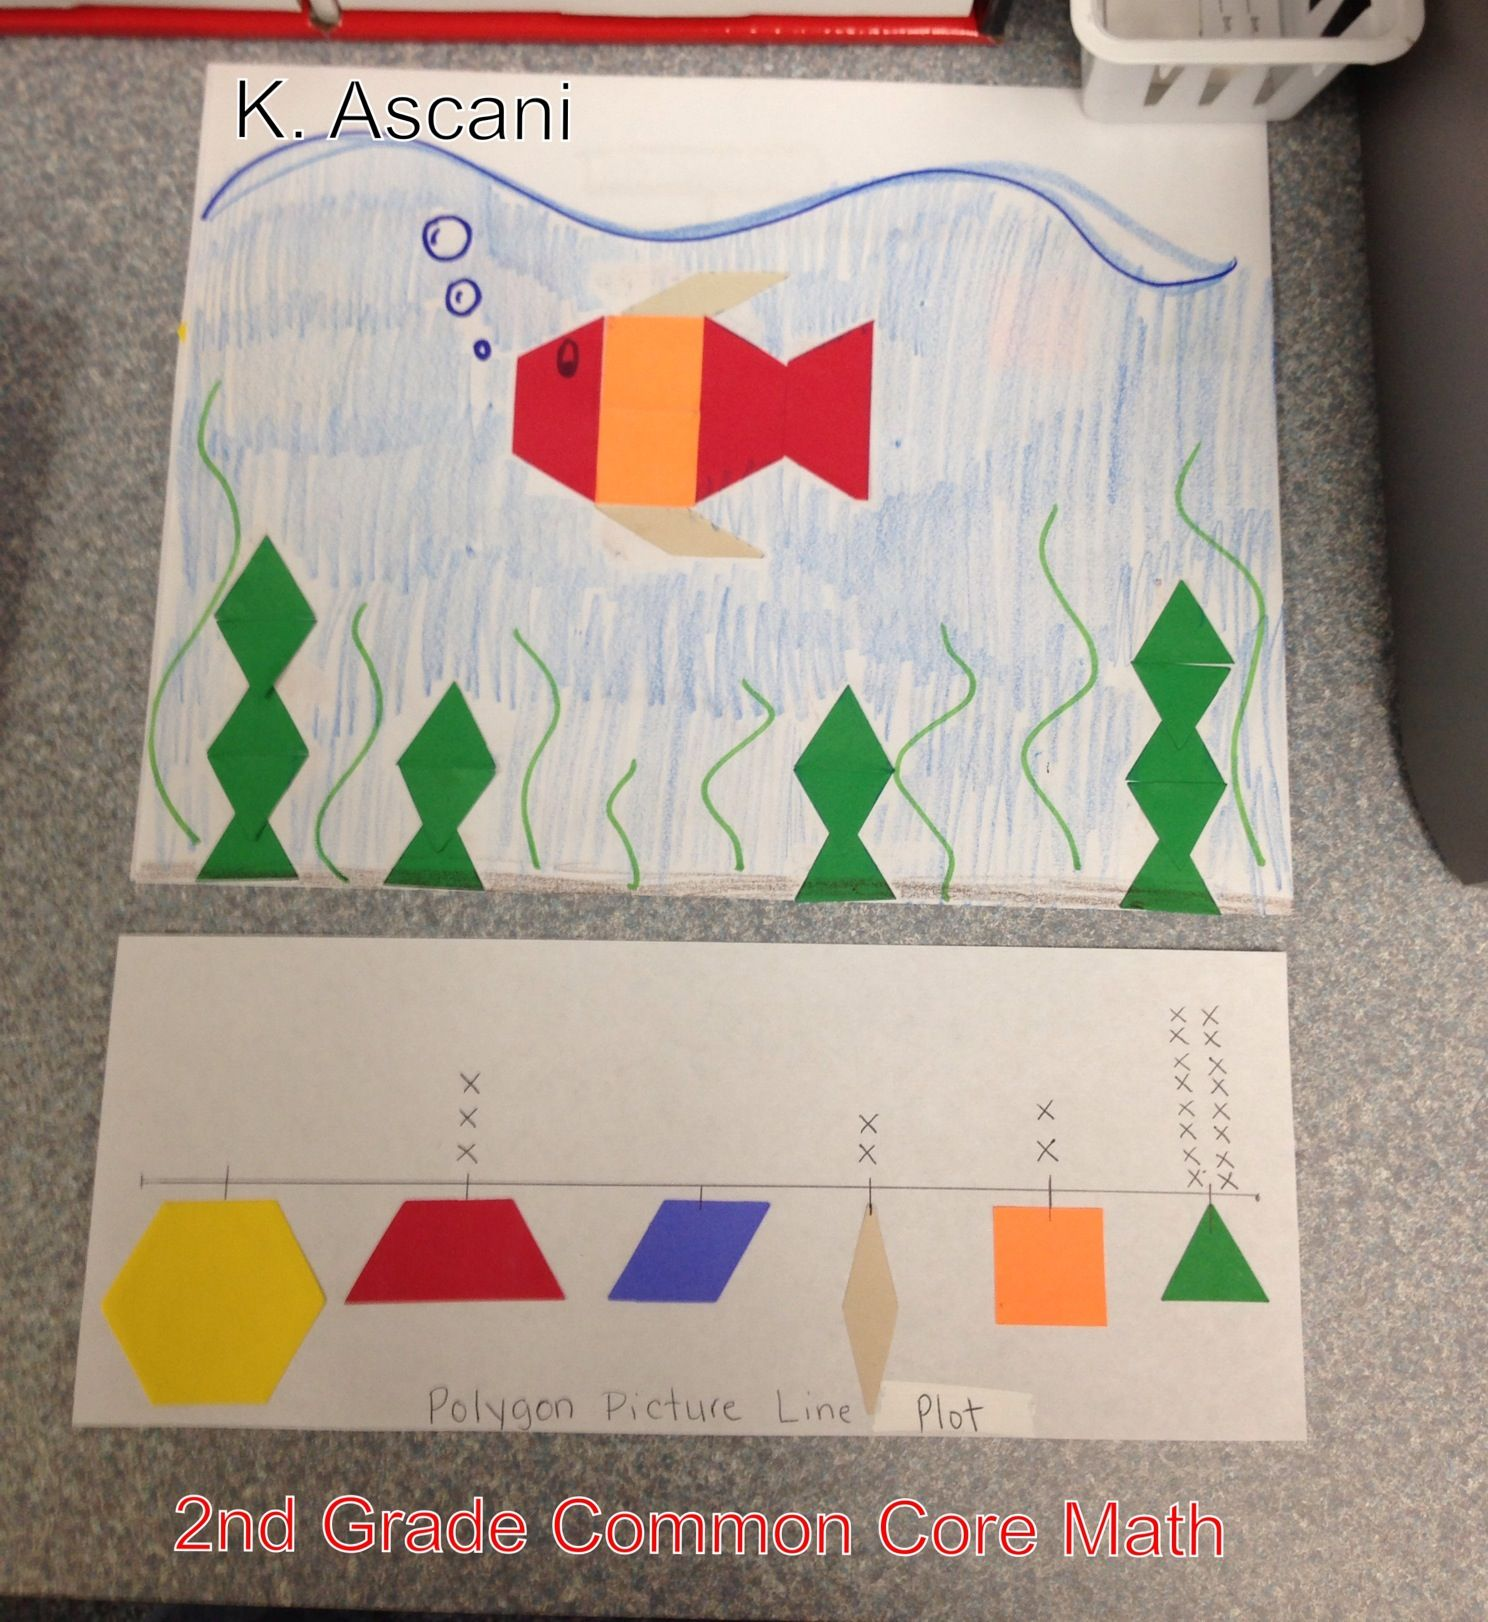 2nd Grade Common Core Math Geometry And Line Plots